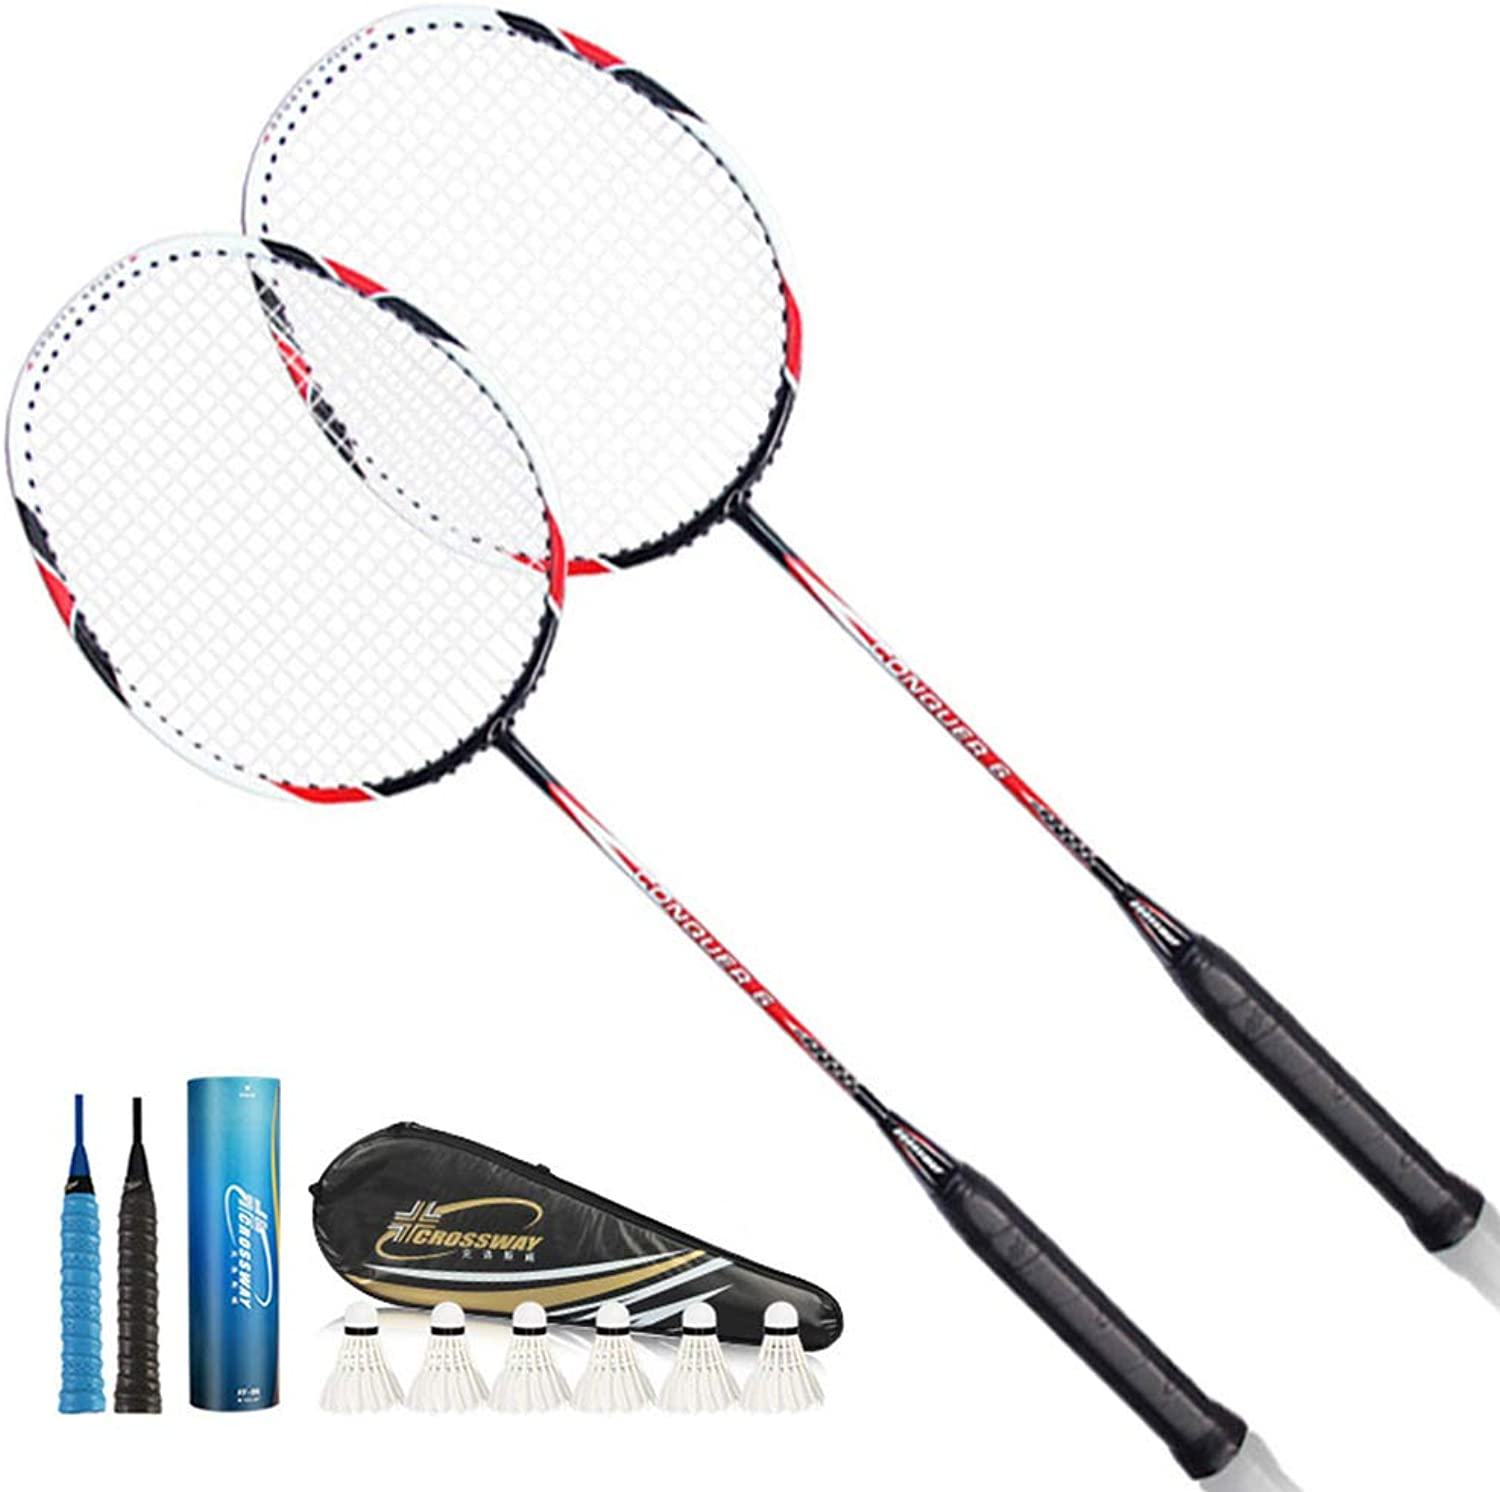 2 Piece Badminton Racket with Badminton Bag Sports Carbon Fiber Lightweight Badminton Racket Professional and Beginner